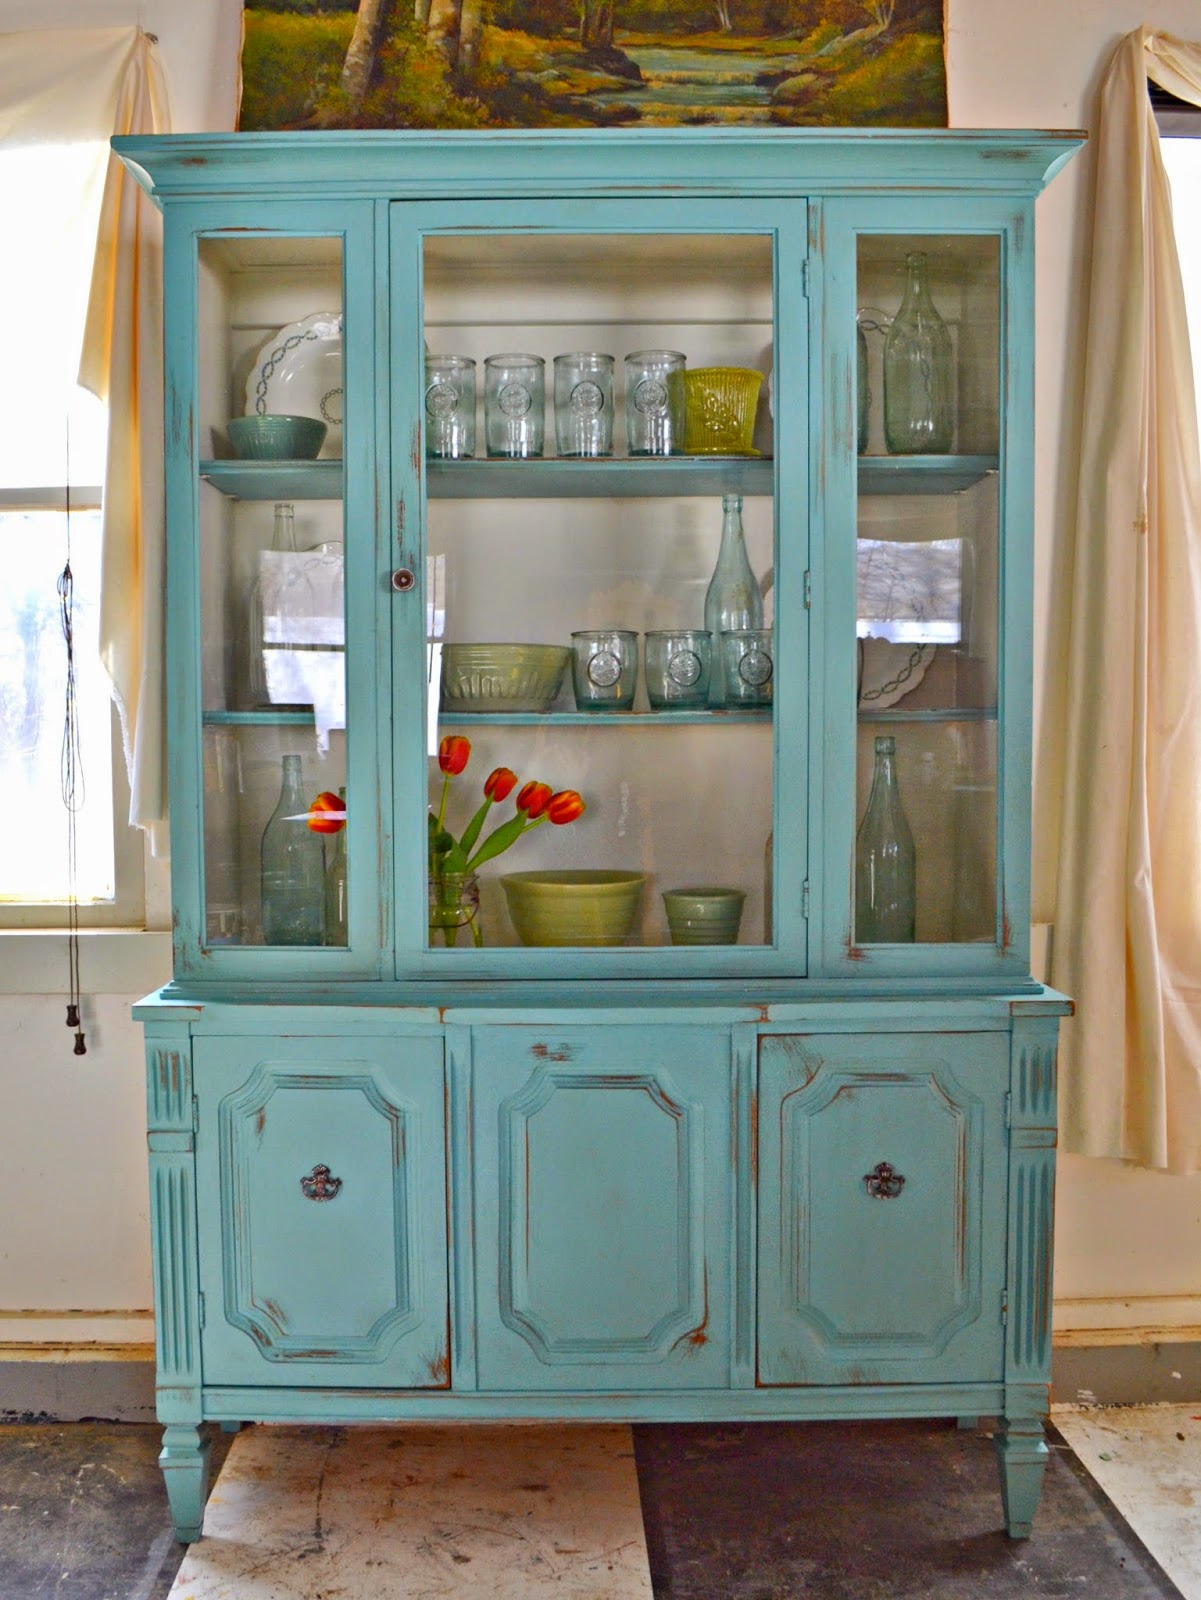 Heir and Space: A Vintage Hutch in White and Aqua